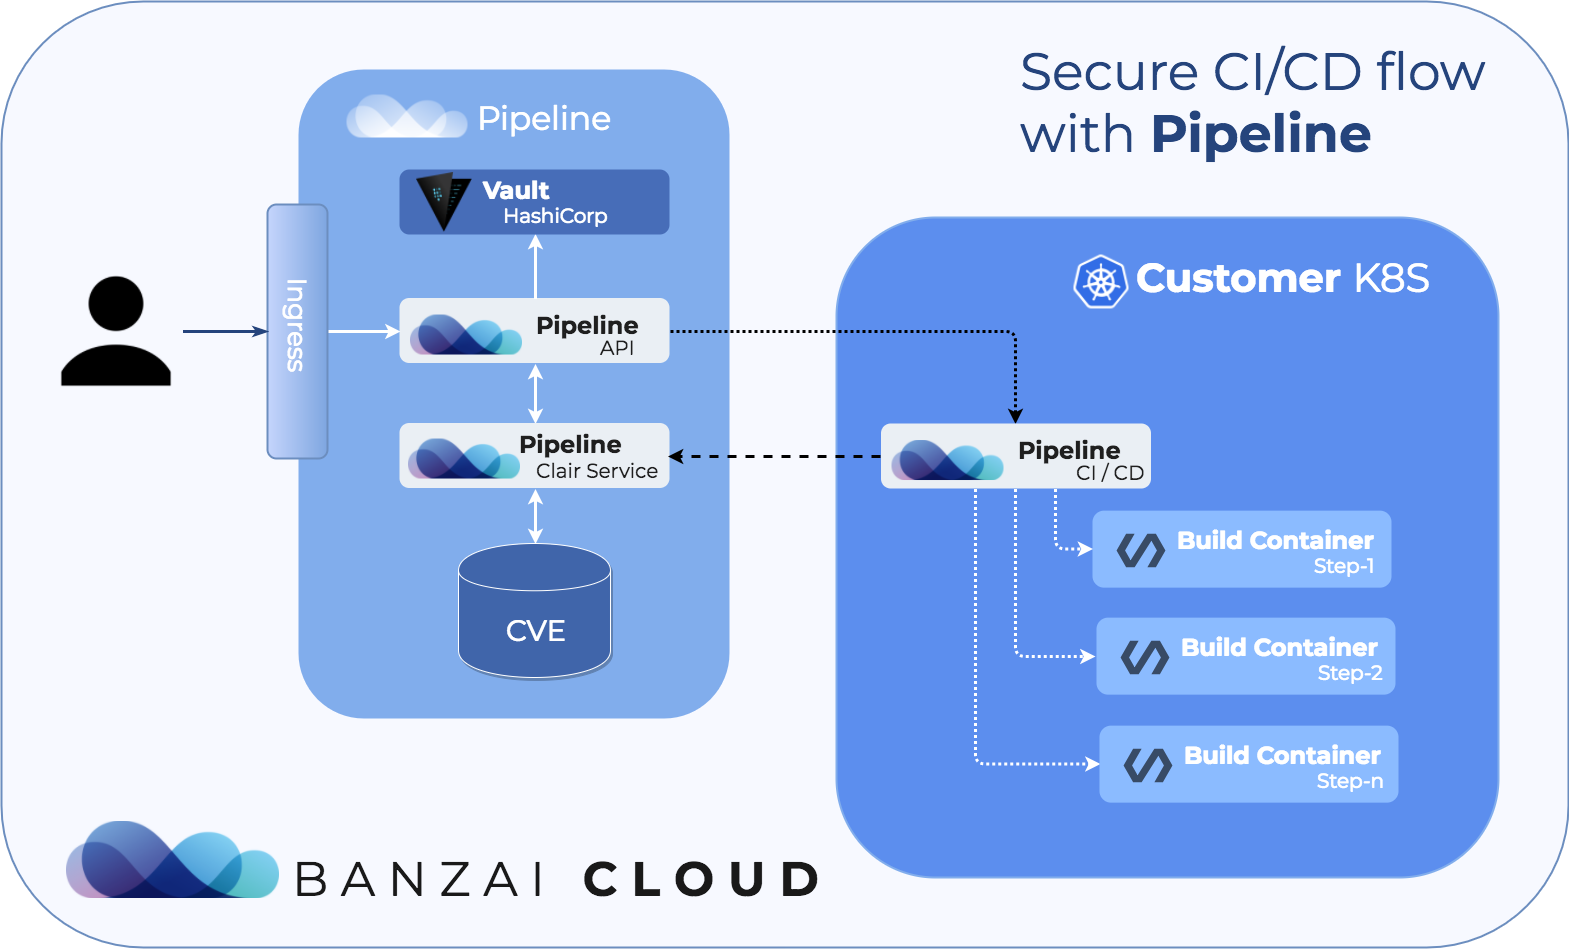 Secure CI/CD flow in Pipeline